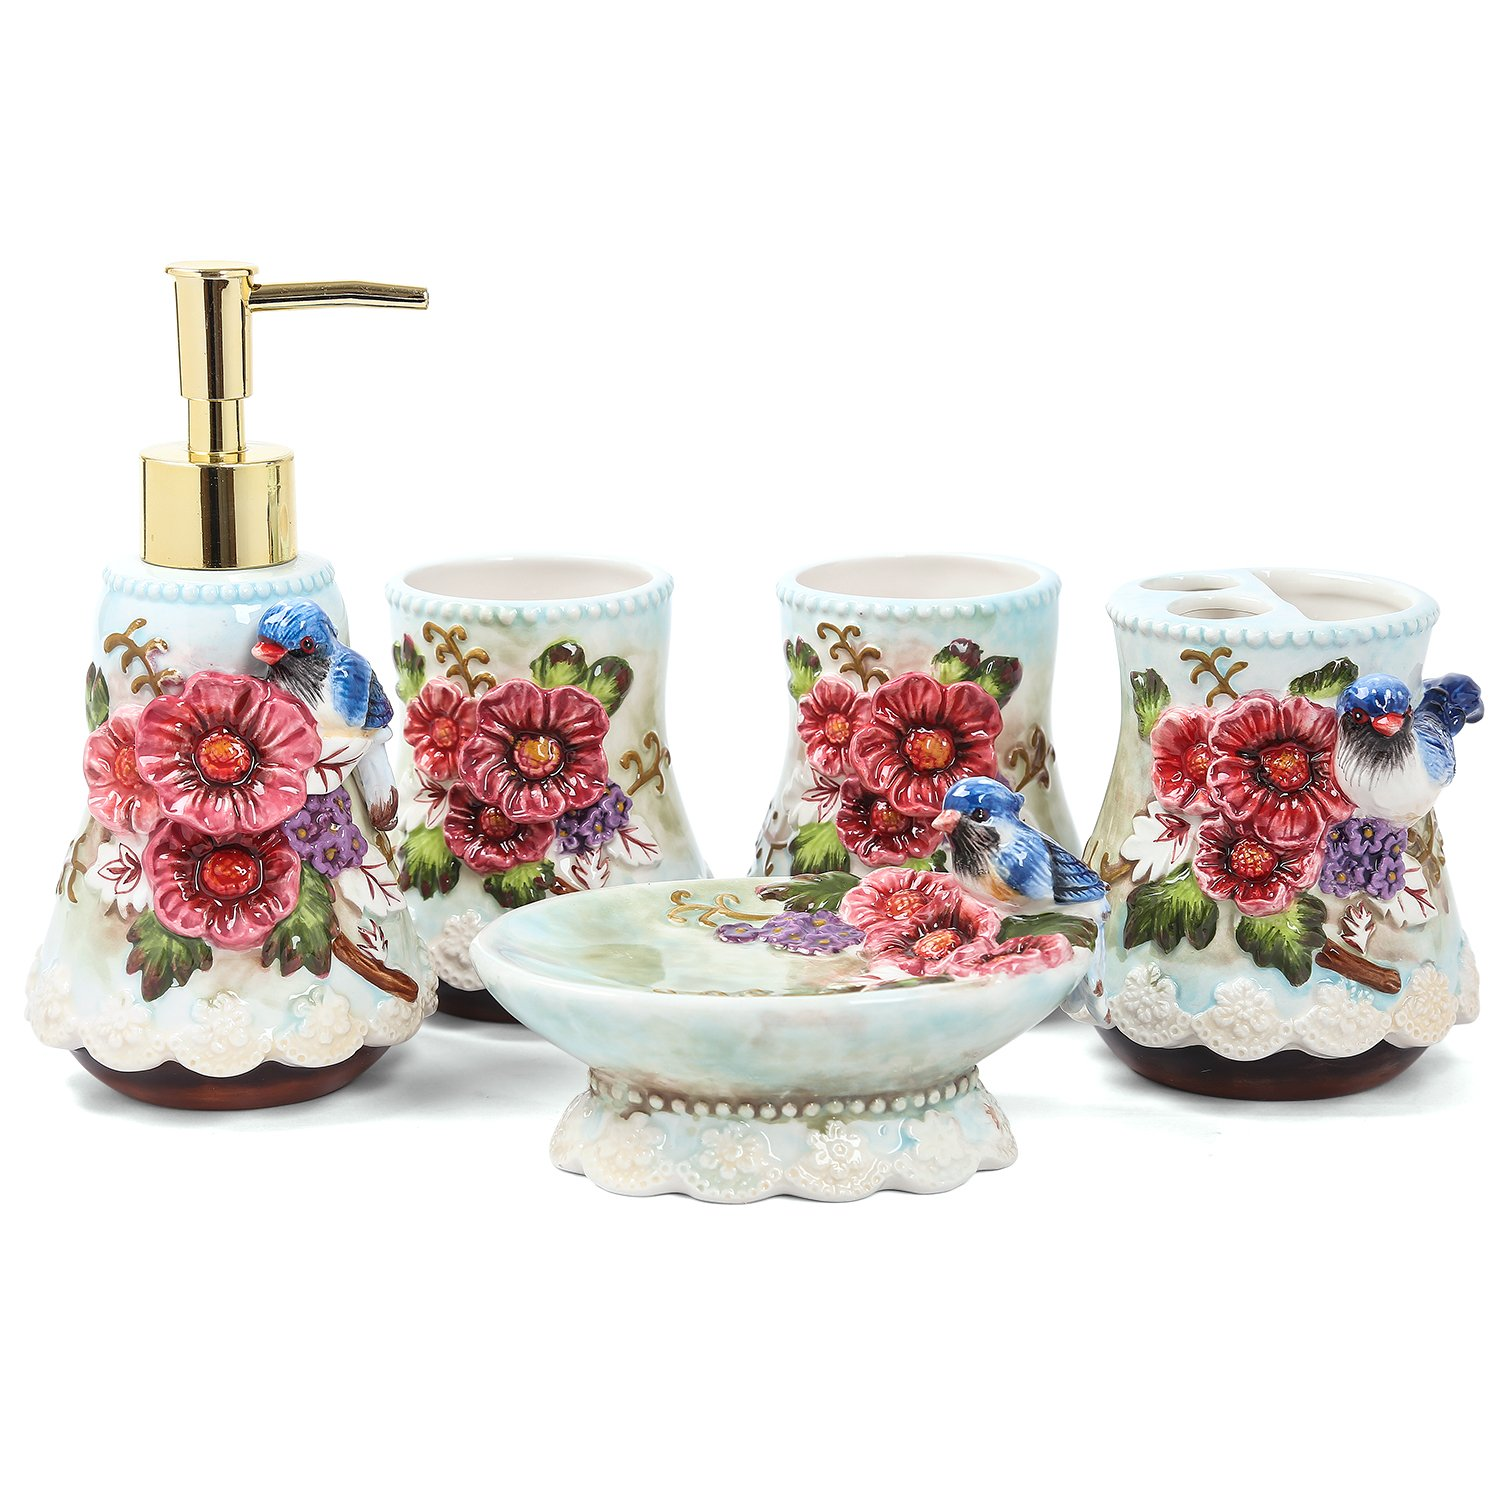 FORLONG Ceramic Bathroom Accessory Set Dancing Butterfly Ceramic 5 Pieces Set, Including Toothbrush Holders, 2 Gargle Tooth-Brushing Cups, Soap Dishes, Soap & Lotion Dispenser FL-3001-Dancing Butterfly